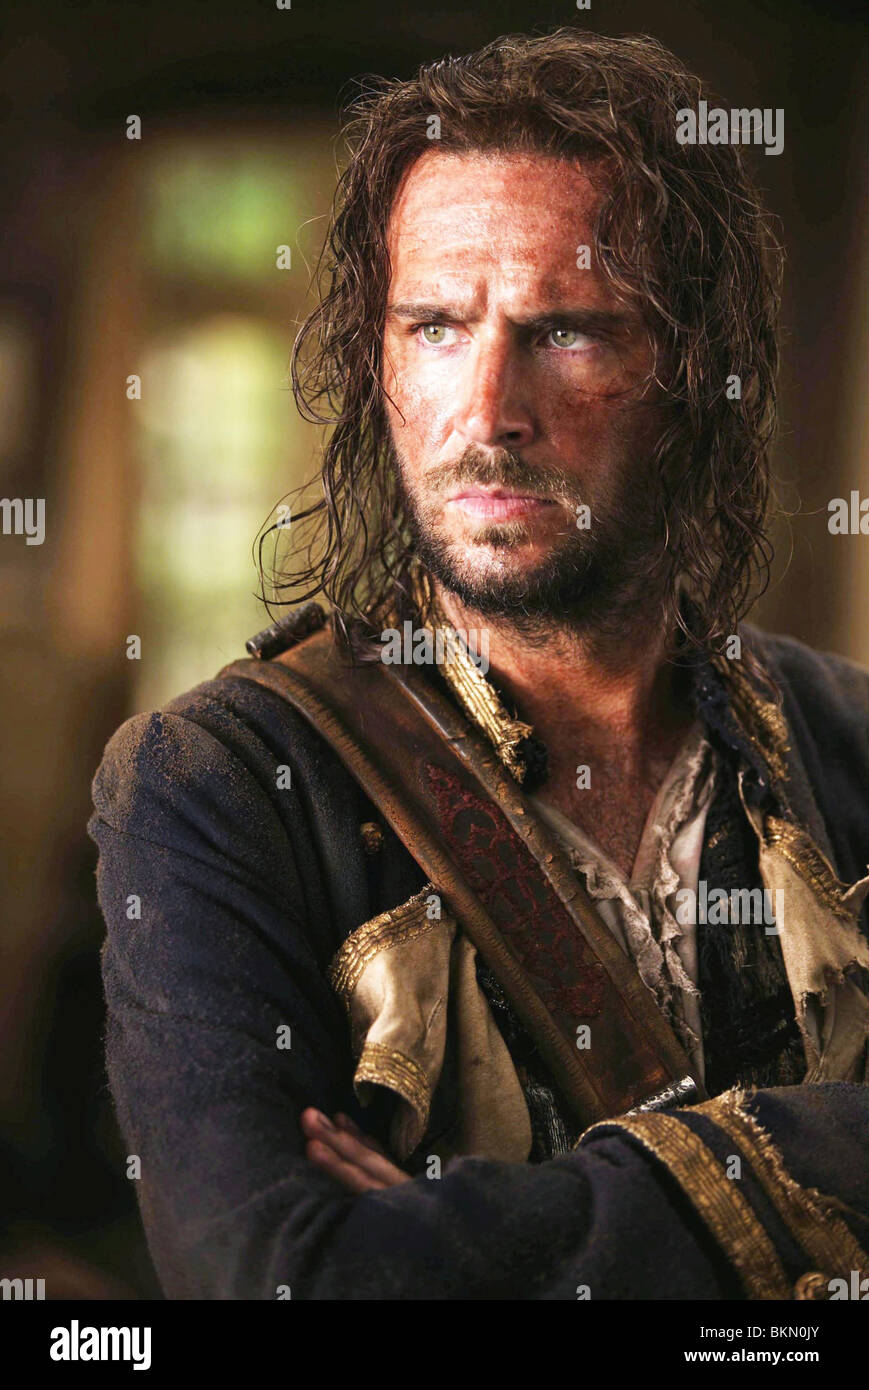 PIRATES OF THE CARIBBEAN: DEAD MAN'S CHEST (2006) JACK DAVENPORT CREDIT DISNEY PDMC 001-15 - Stock Image